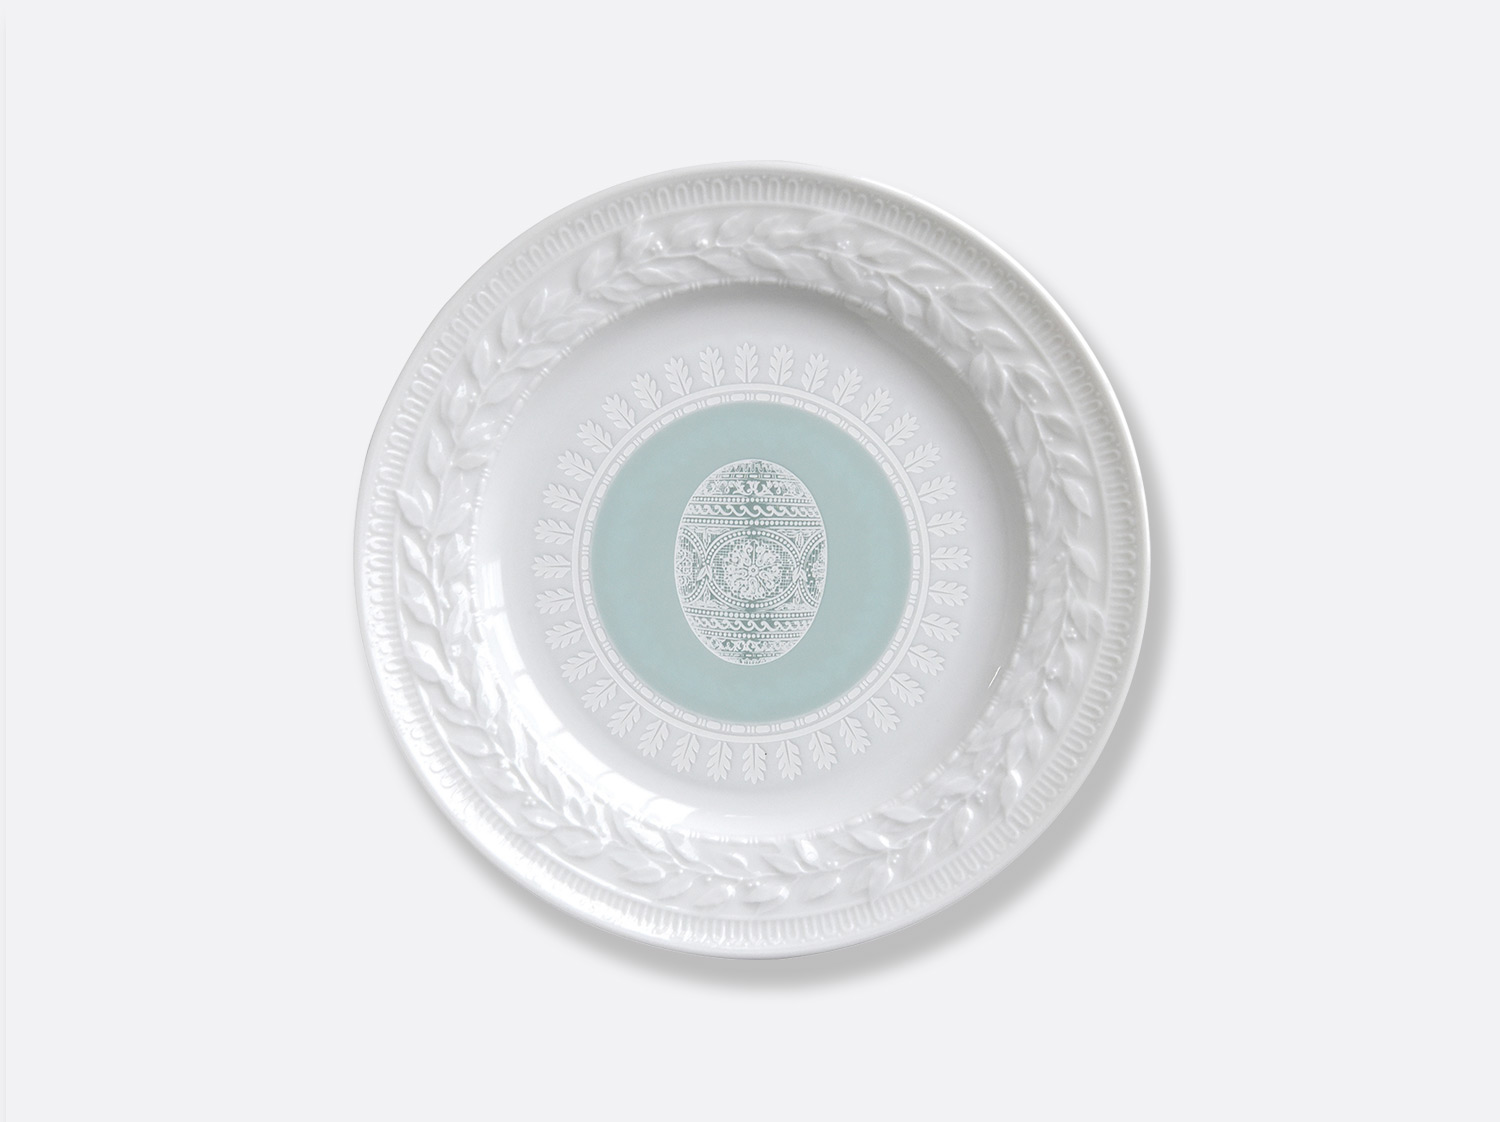 China Green salad plate 8.5'' of the collection Louvre pâques vert | Bernardaud